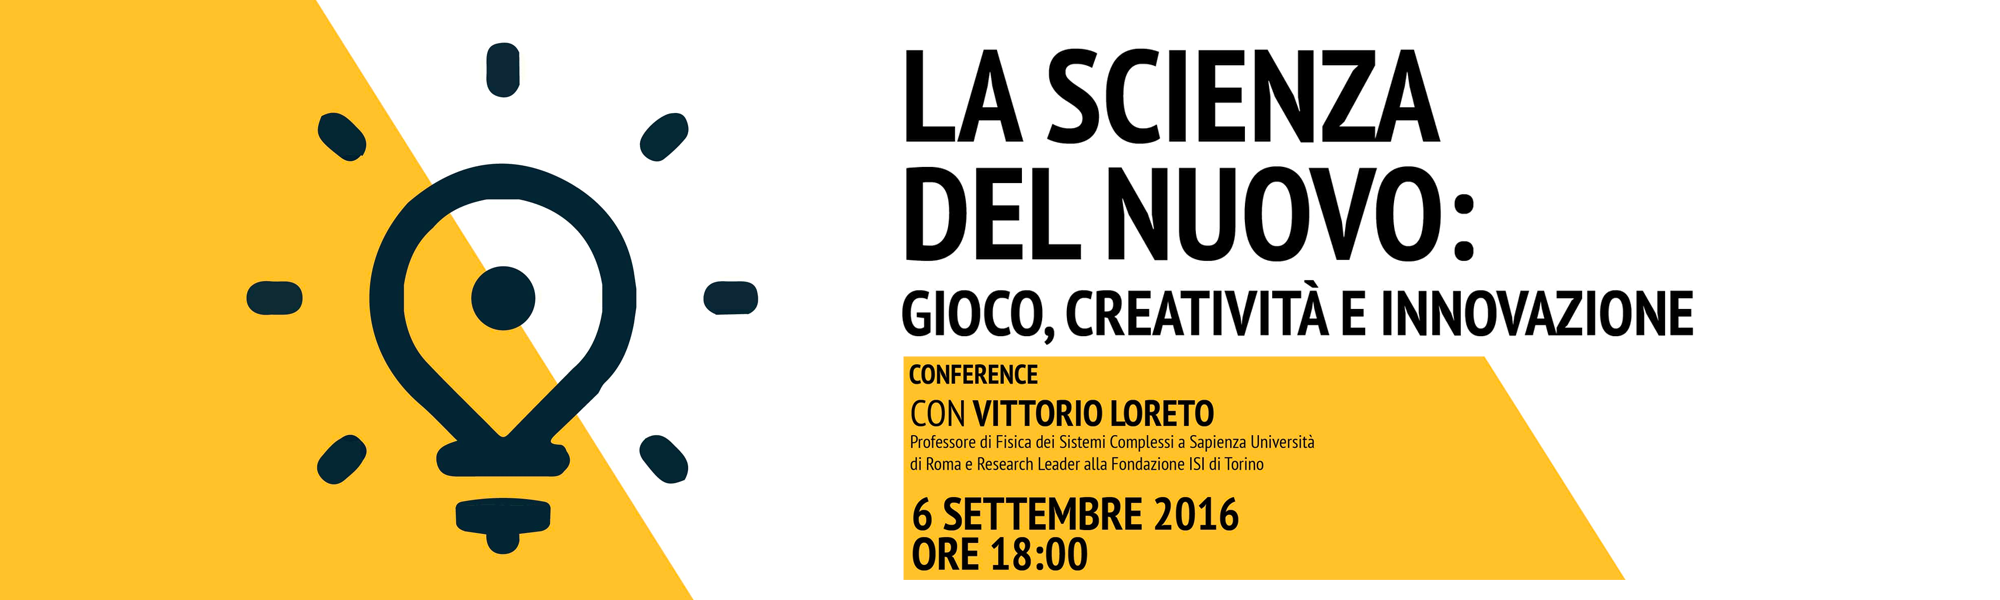 La scienza del nuovo - Como Lake School